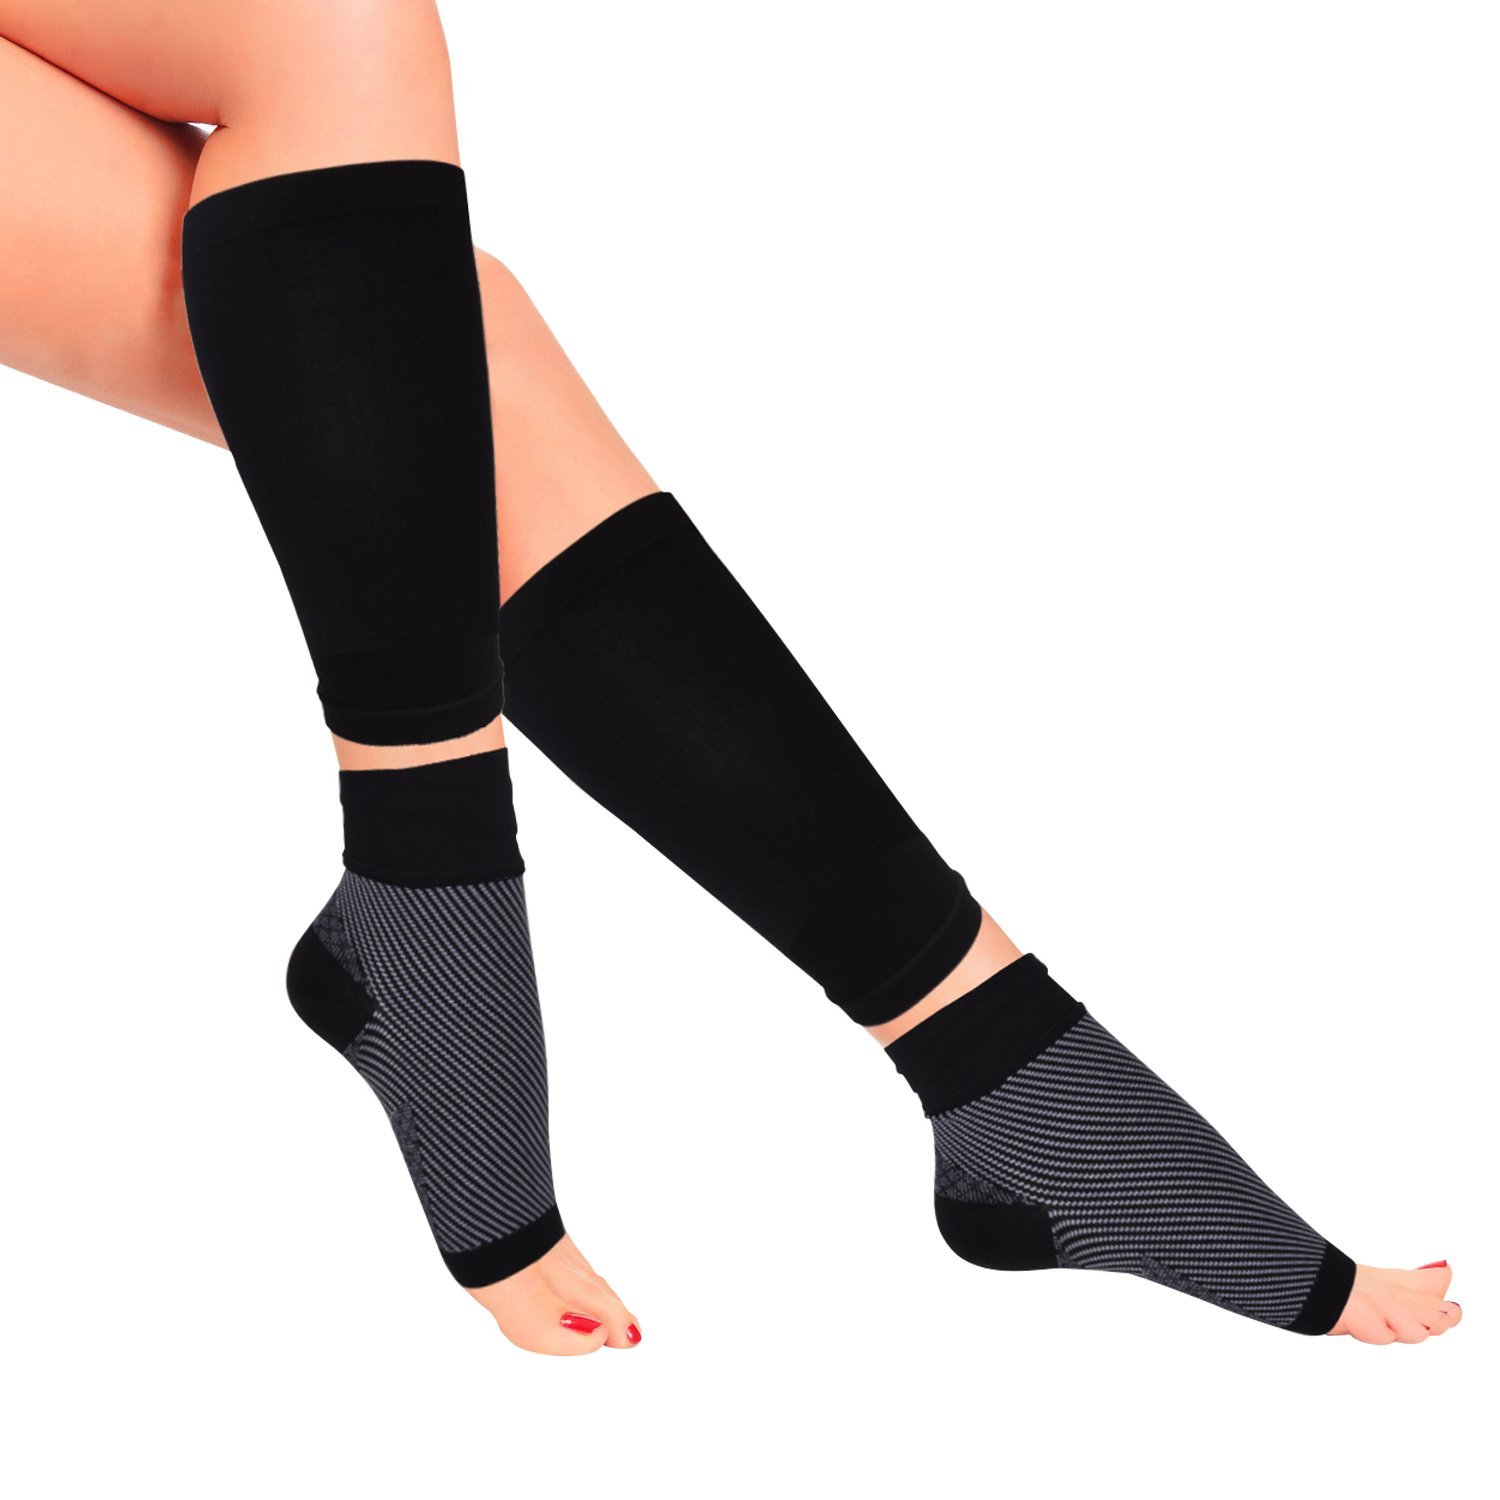 7981575860 Get Quotations · PACEARTH Plantar Fasciitis Socks & Calf Compression Sleeves  Functional Socks Calf Sports Sleeves Eases Swelling Heel